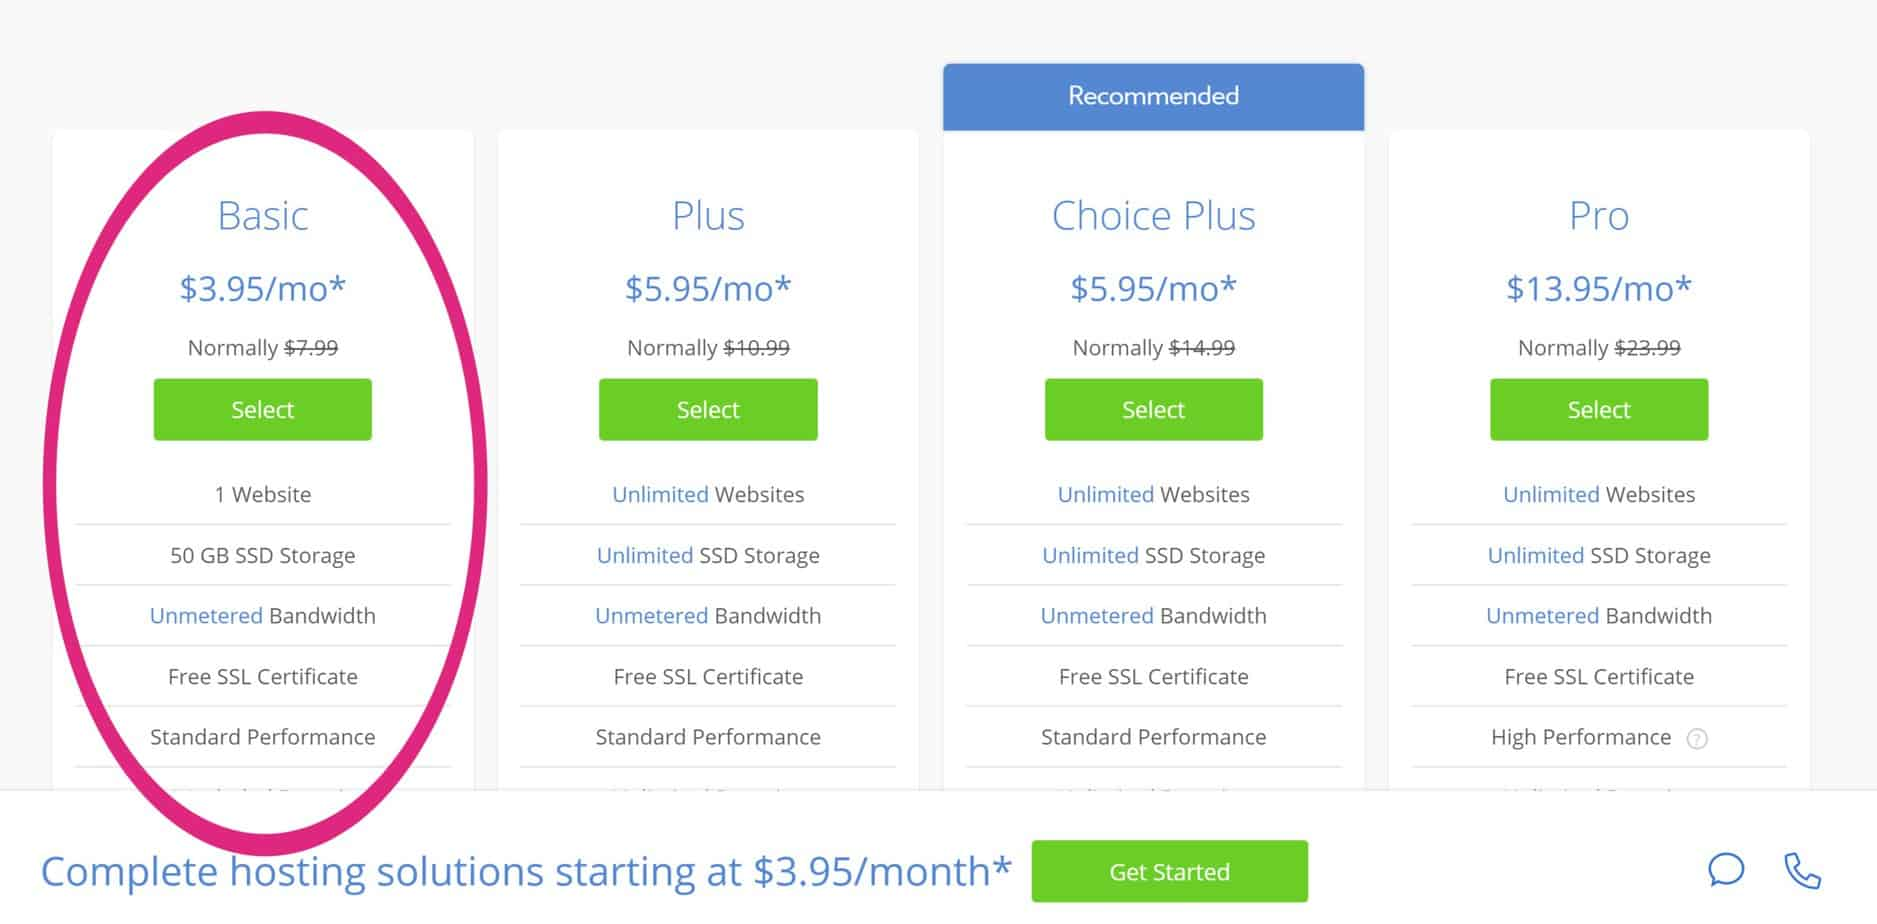 Web hosting plans and pricing.